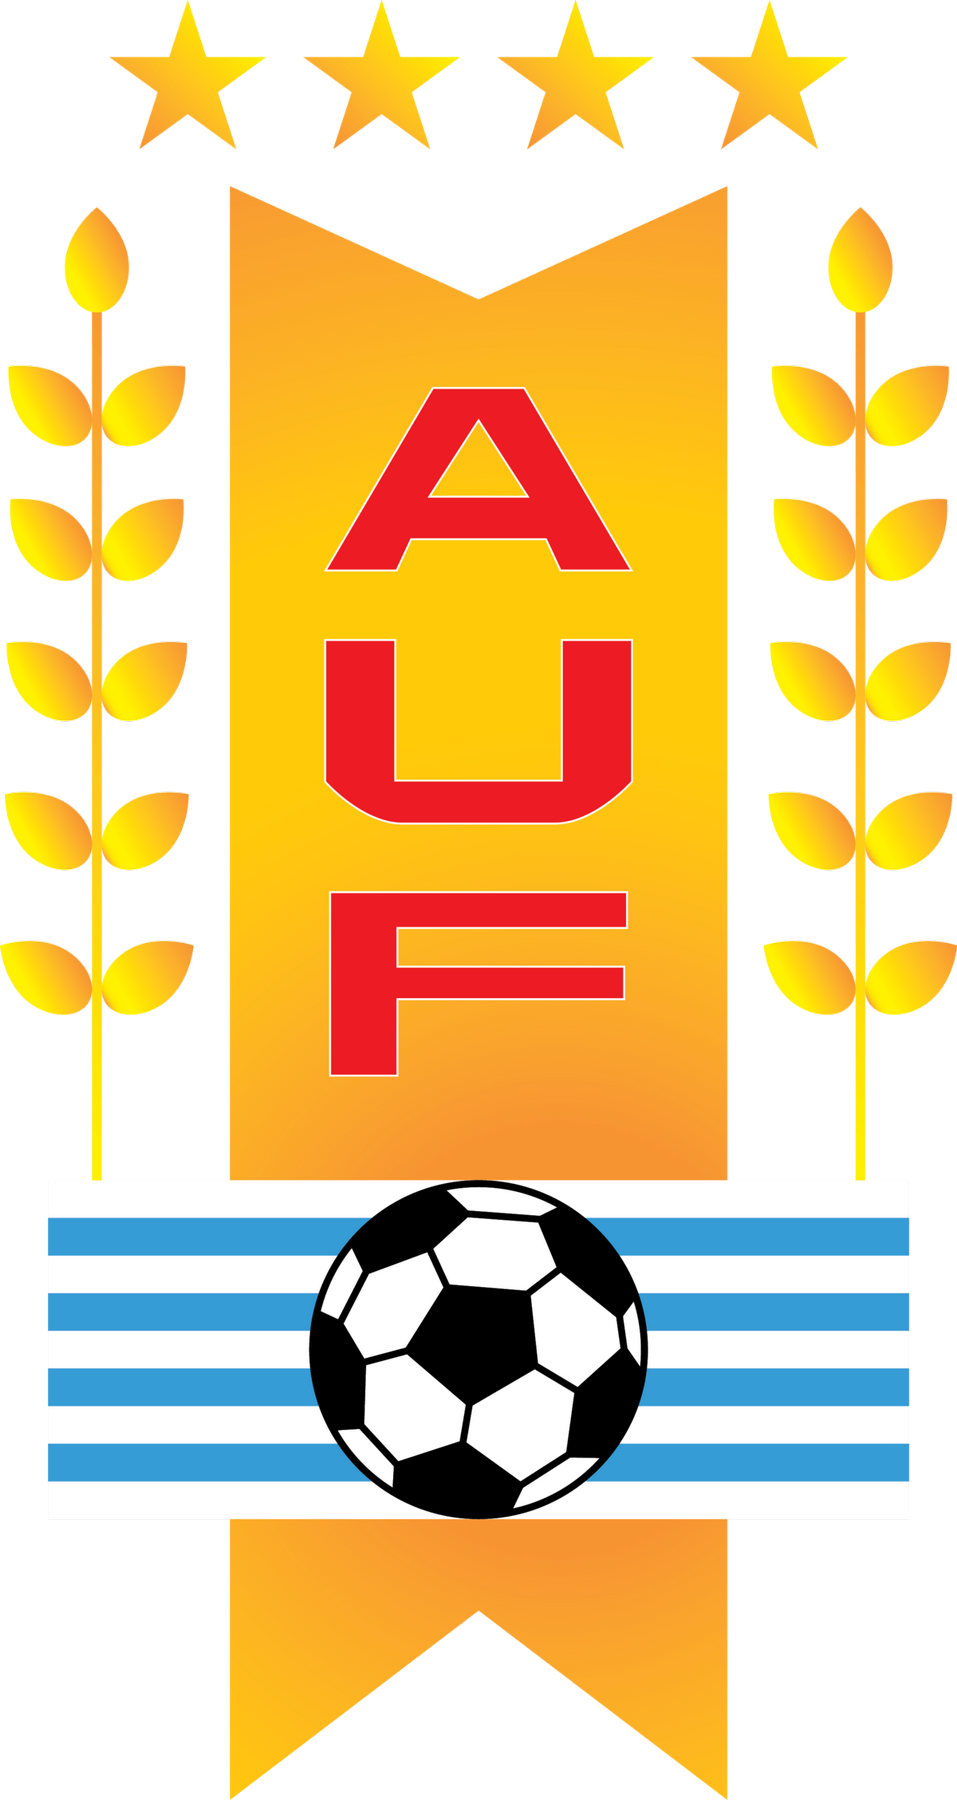 uruguay football association logo logoeps.net